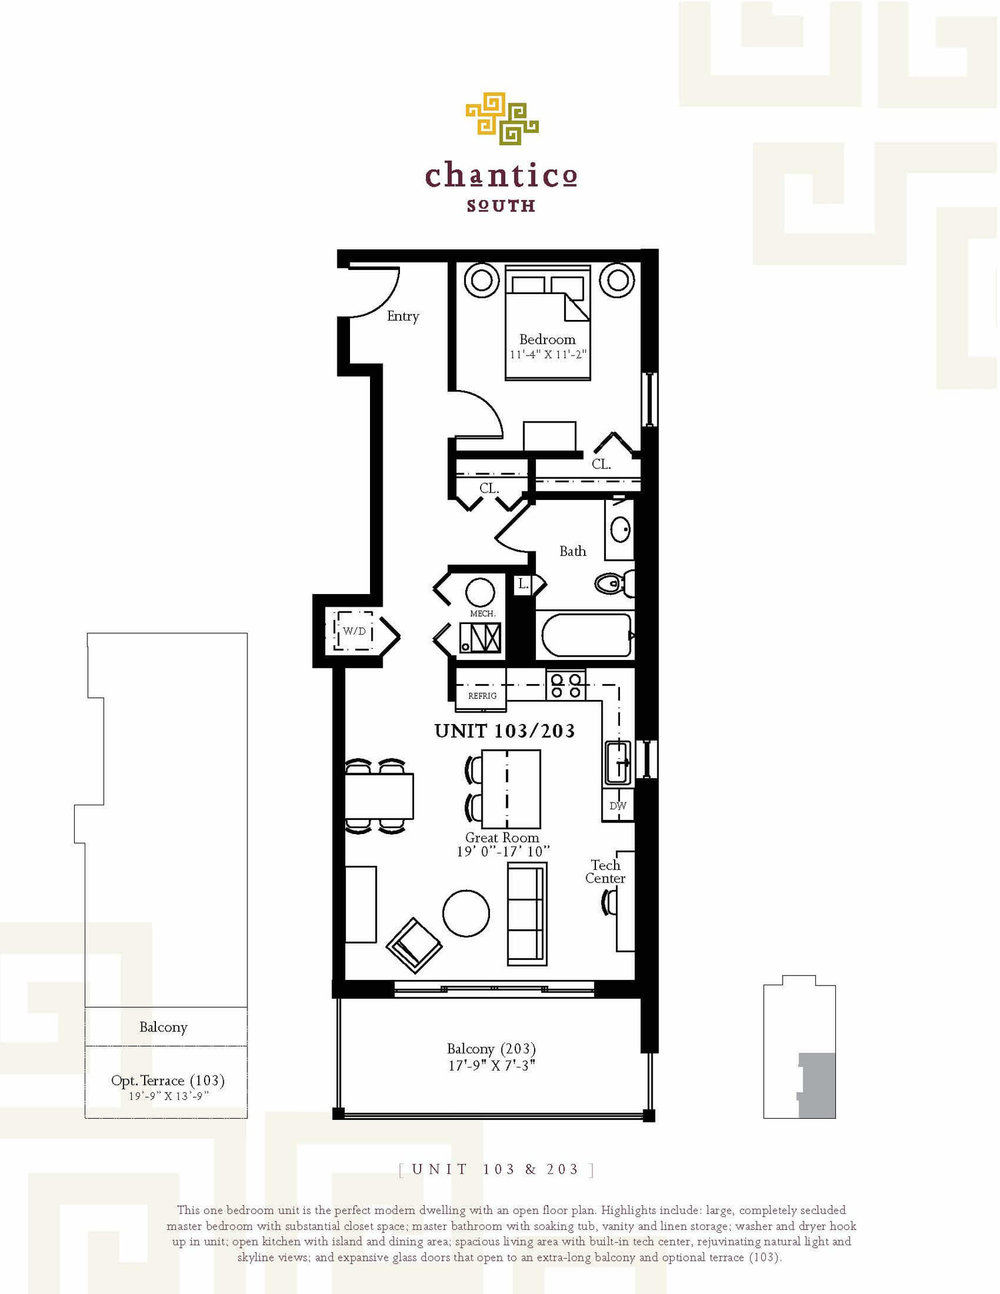 Chicago-apartment-103-203-Chantico-South-Floorplans.jpg